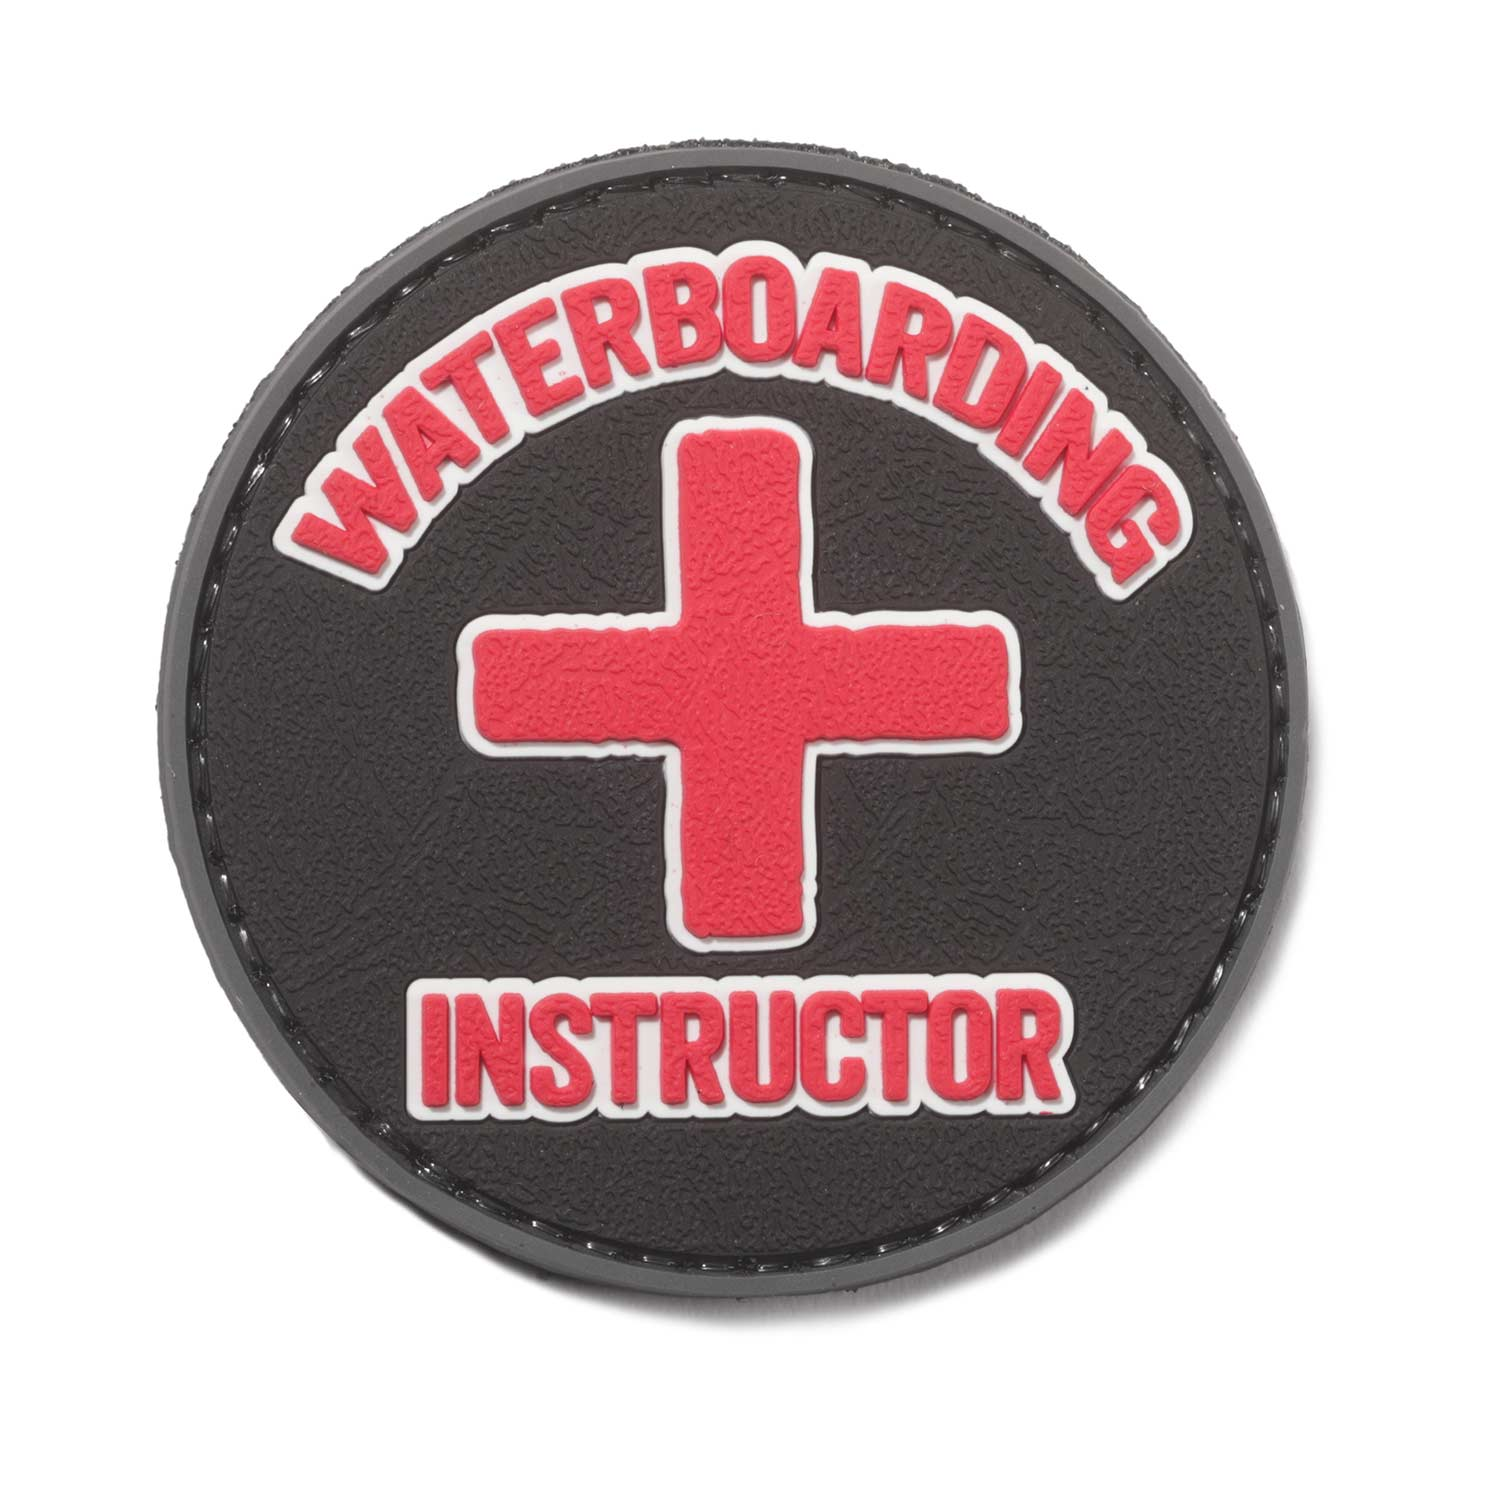 5ive Star Gear Waterboarding Morale Patch